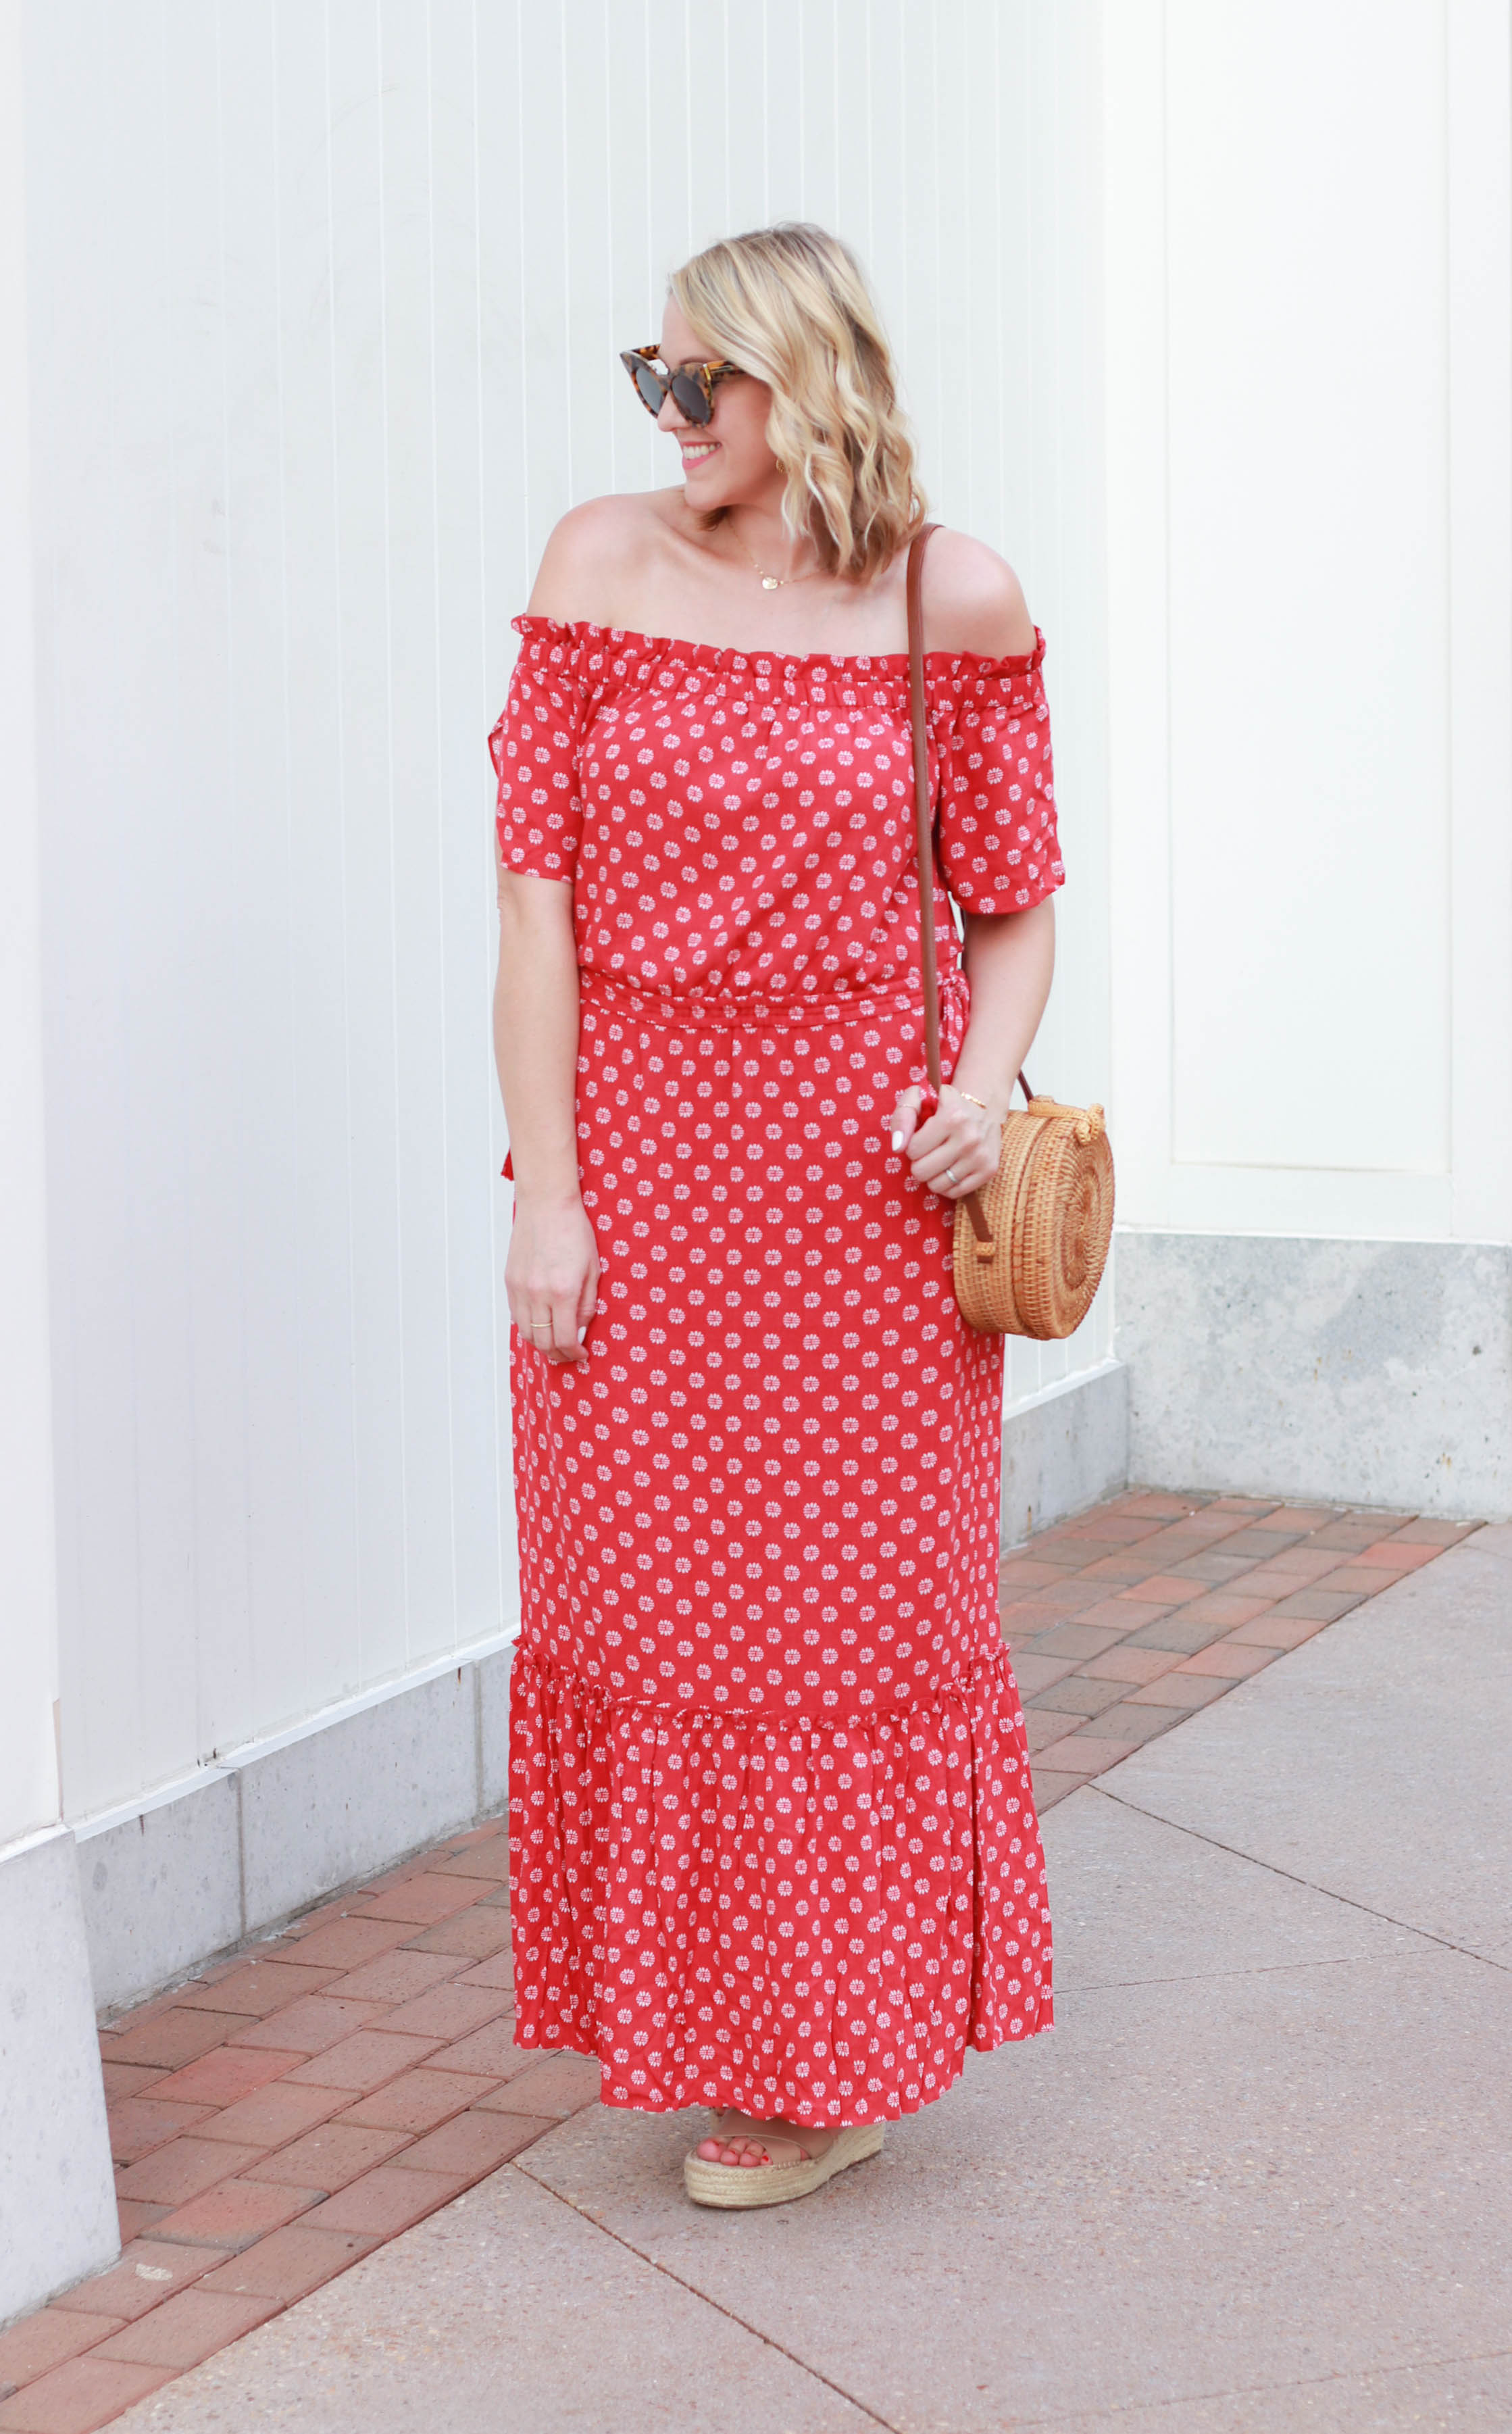 red off the shoulder printed maxi dress 1.STATE #macys #macyslove #maxidress #bohostyle